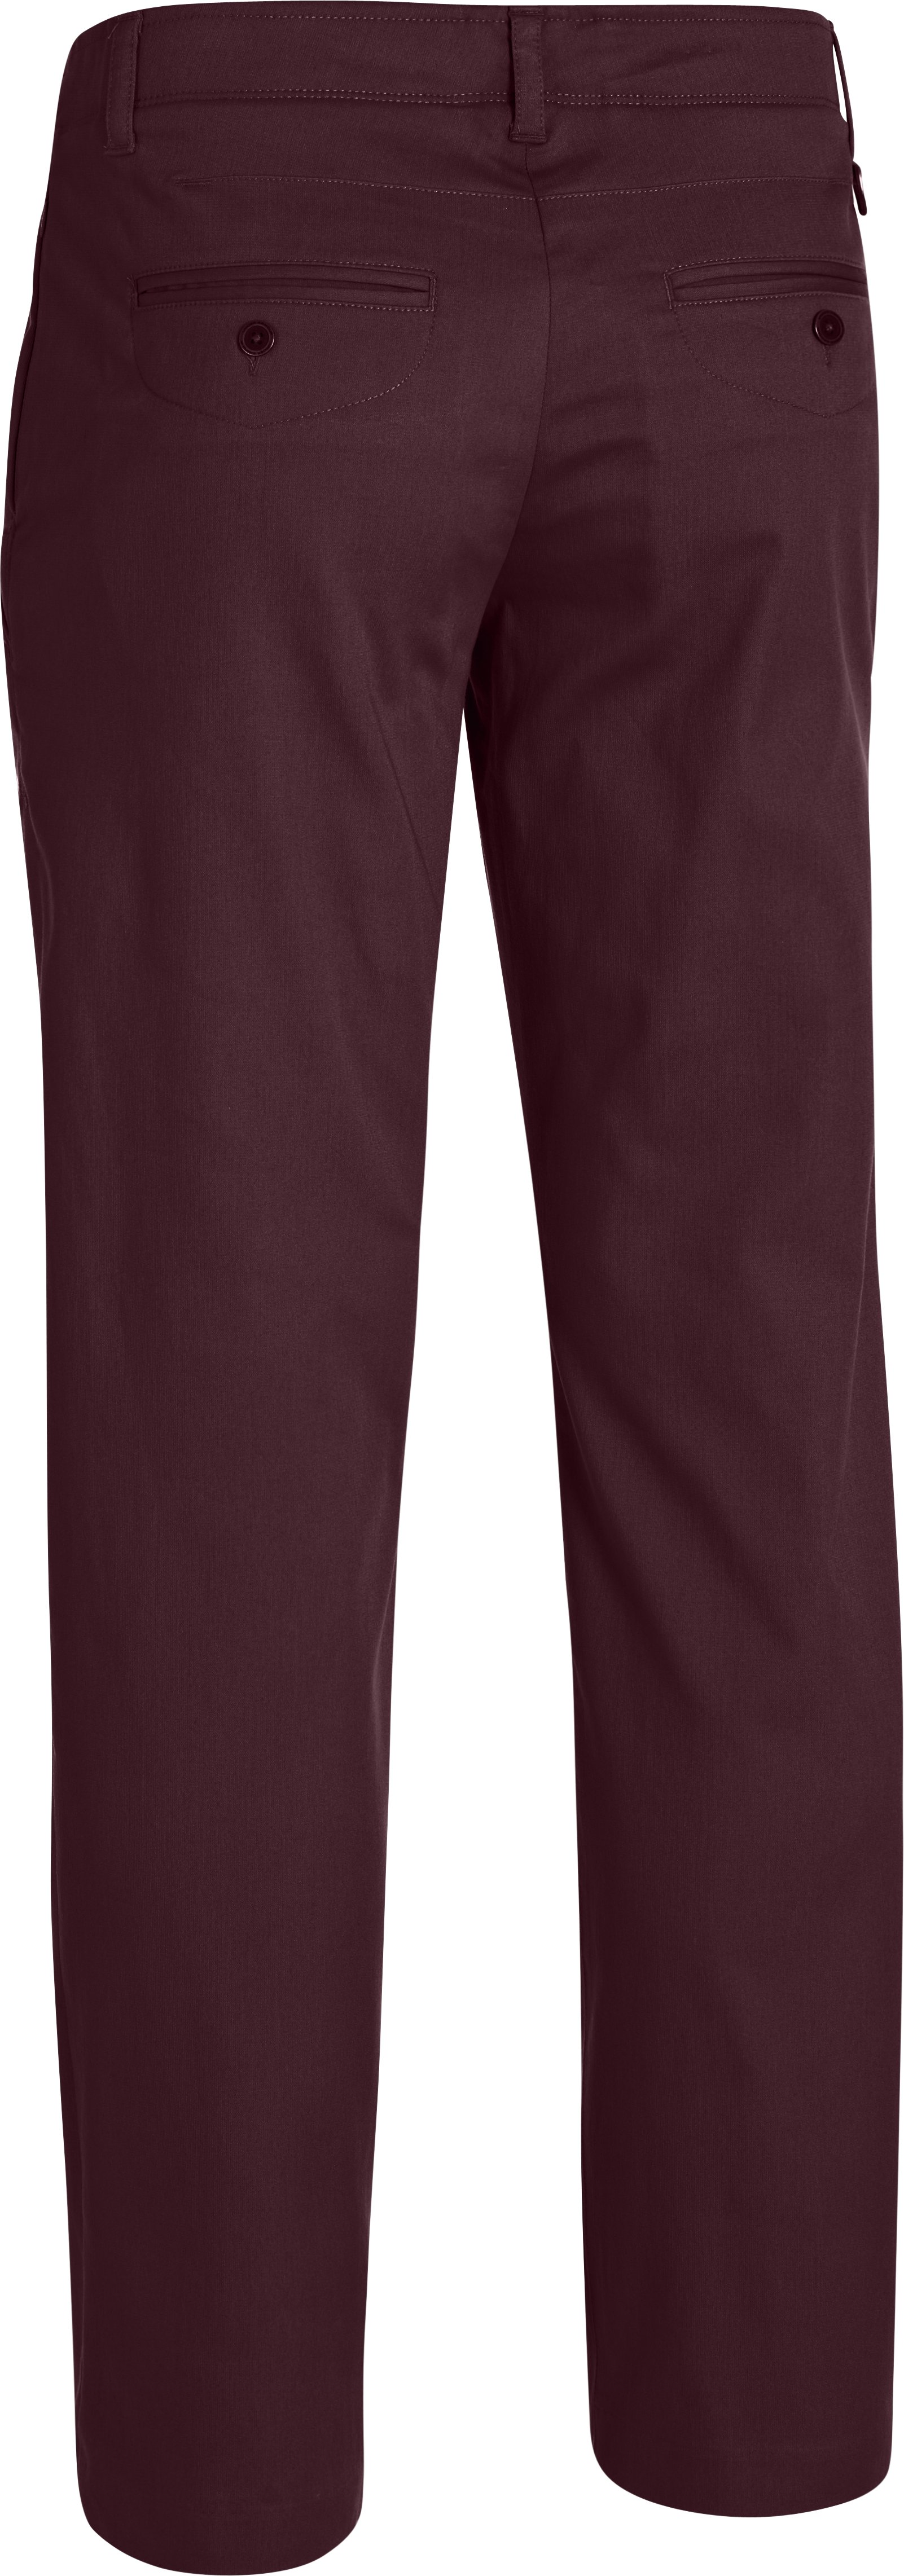 Men's UA Performance Chino, Ox Blood, undefined